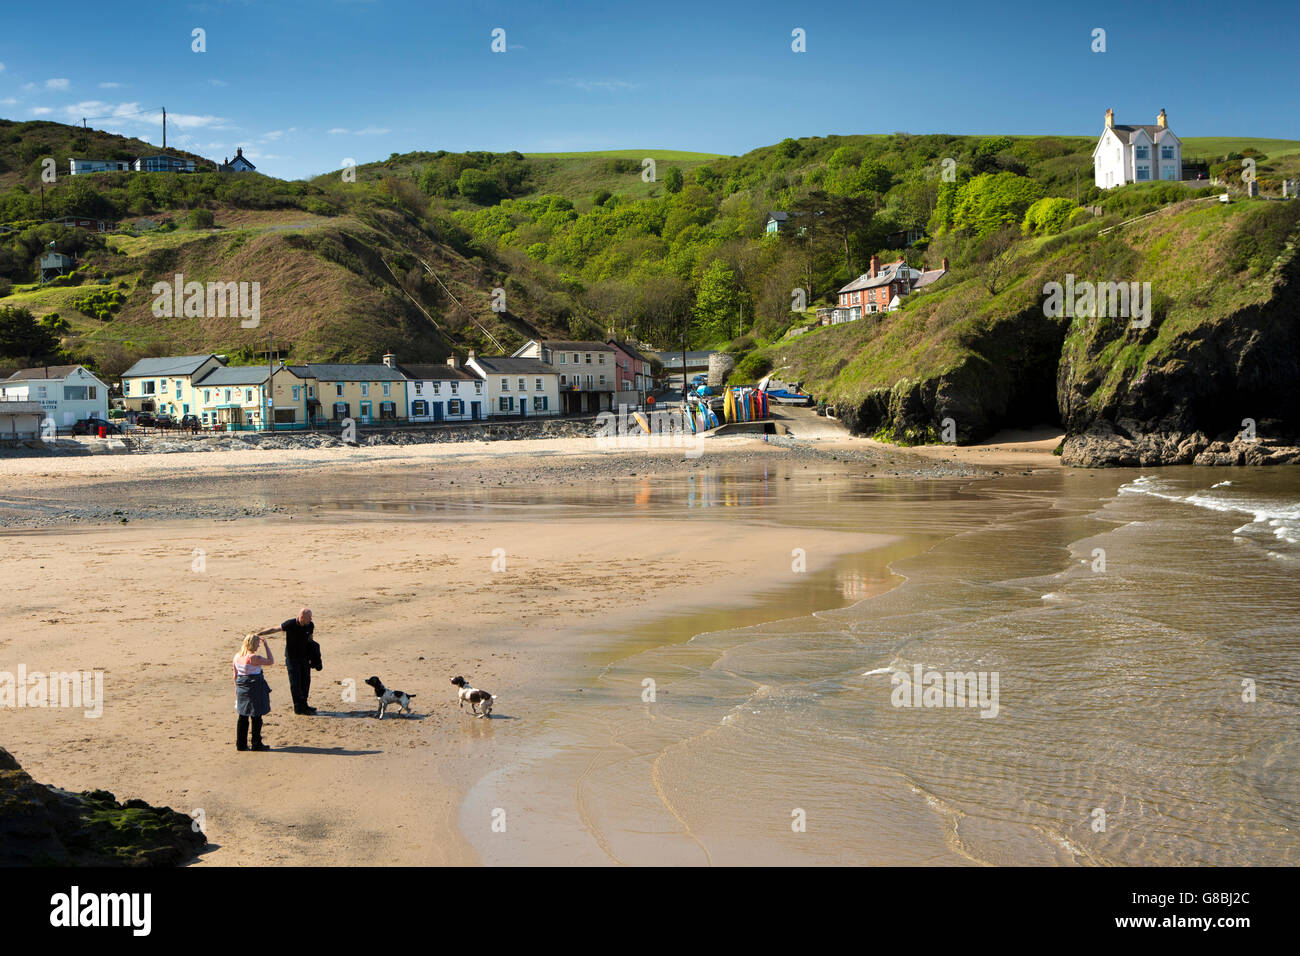 UK, Wales, Ceredigion, Llangrannog, beach, early morning, couple with dogs - Stock Image